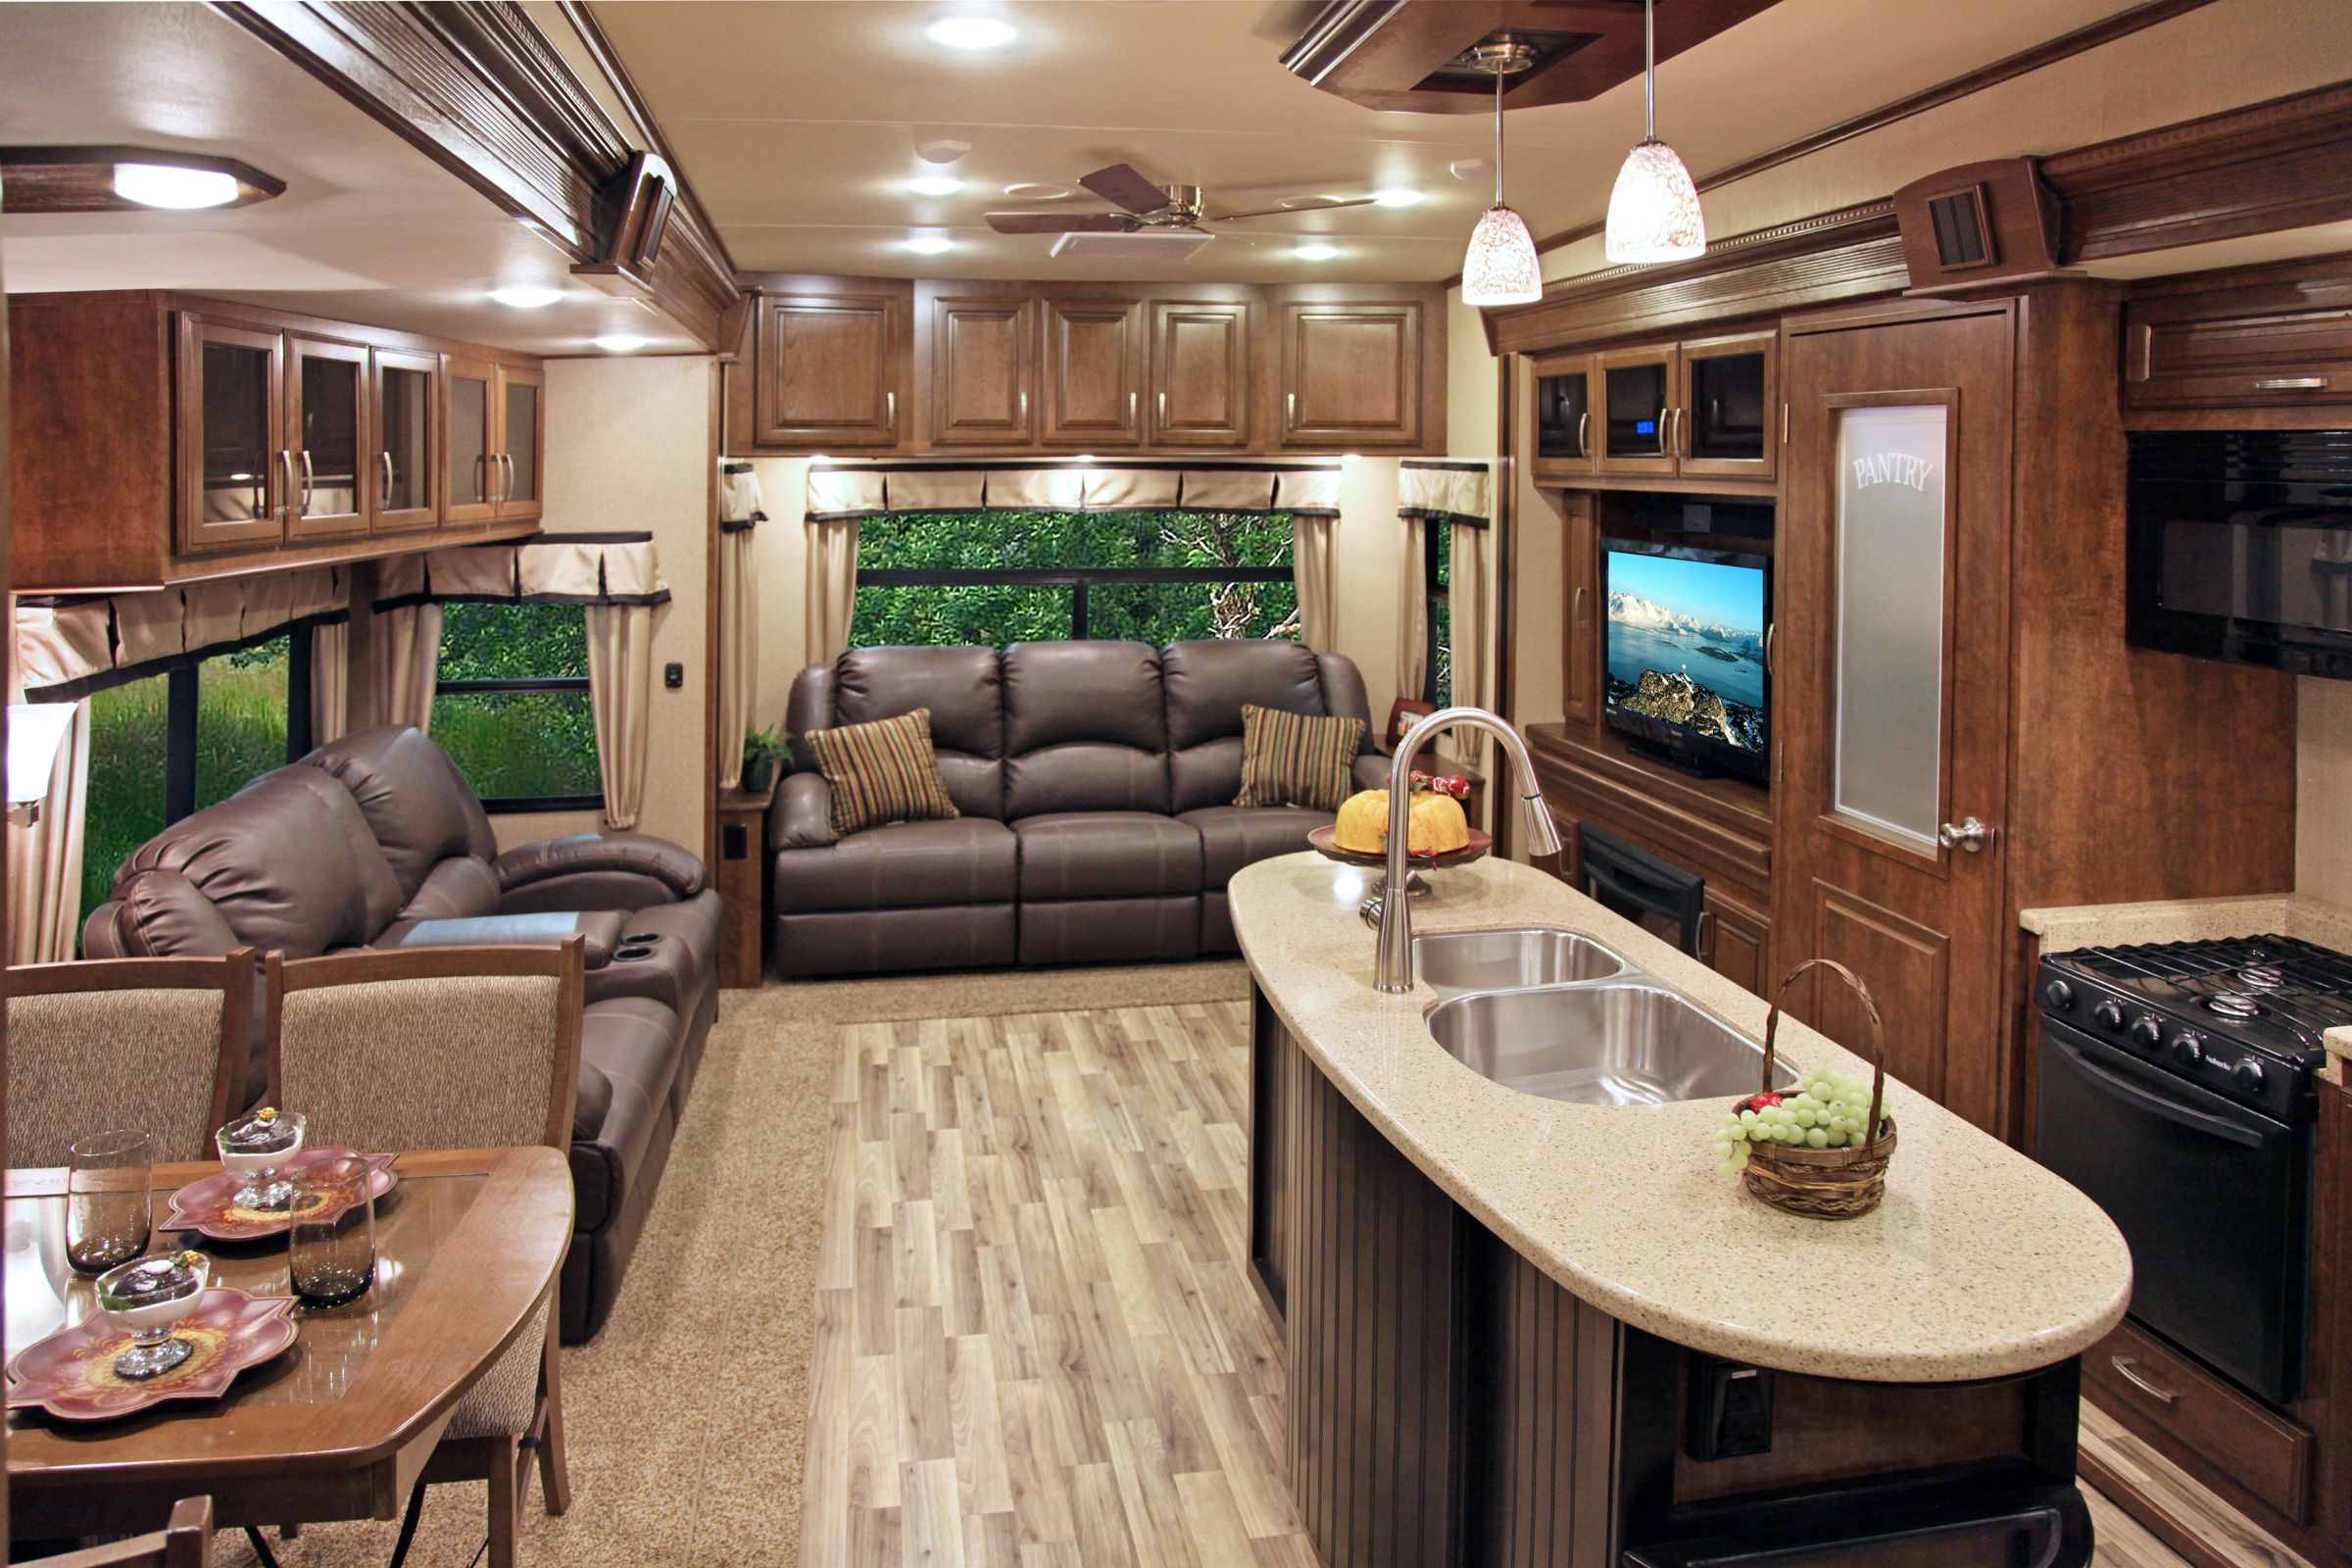 Modern rv interiors - Rv Design Grand Design To Unveil Solitude At Tampa Show